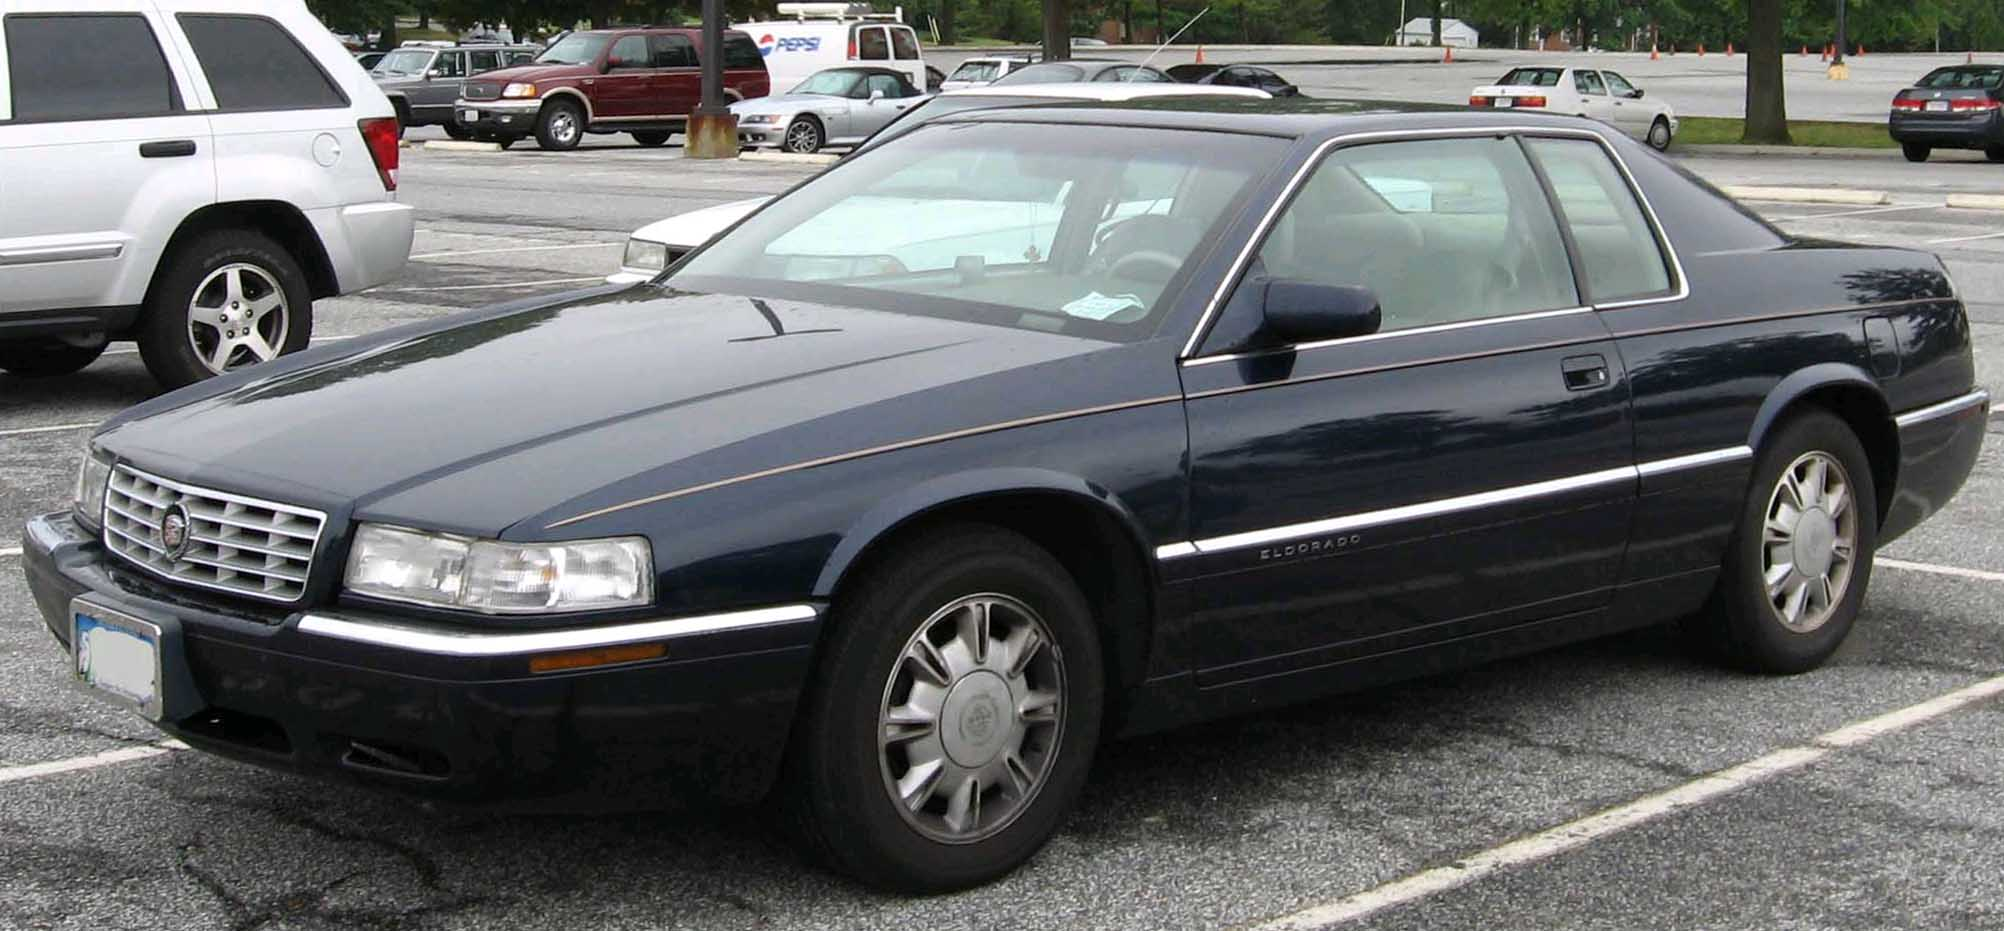 Description 8th-Cadillac-Eldorado.jpg